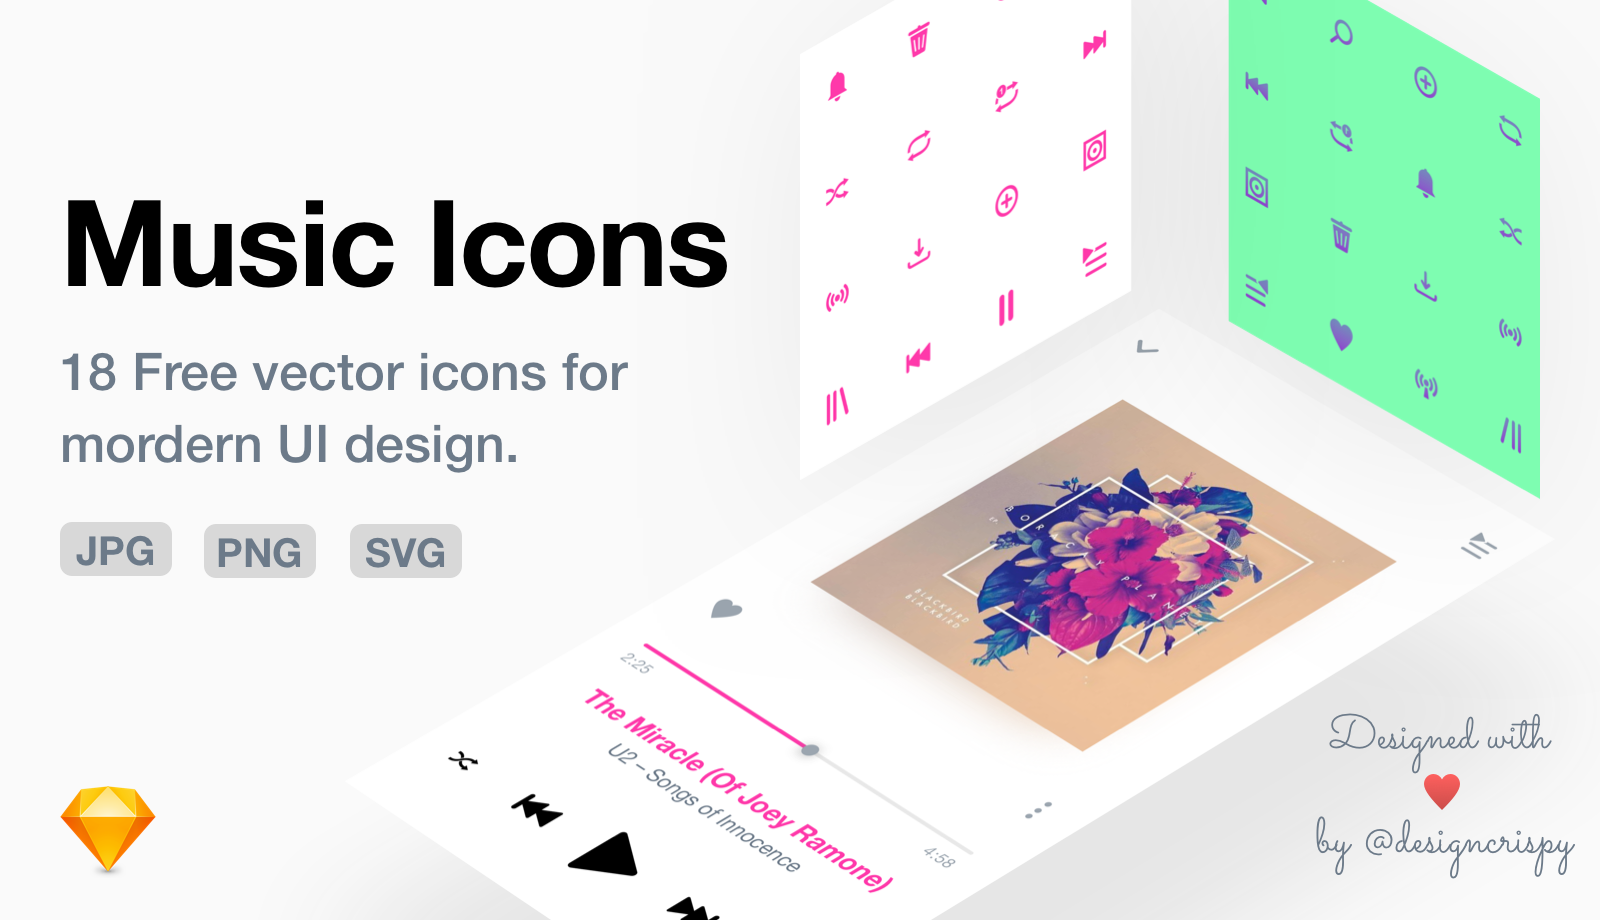 Music Icon Pack — Free Vector Icons for UI Design - techburst